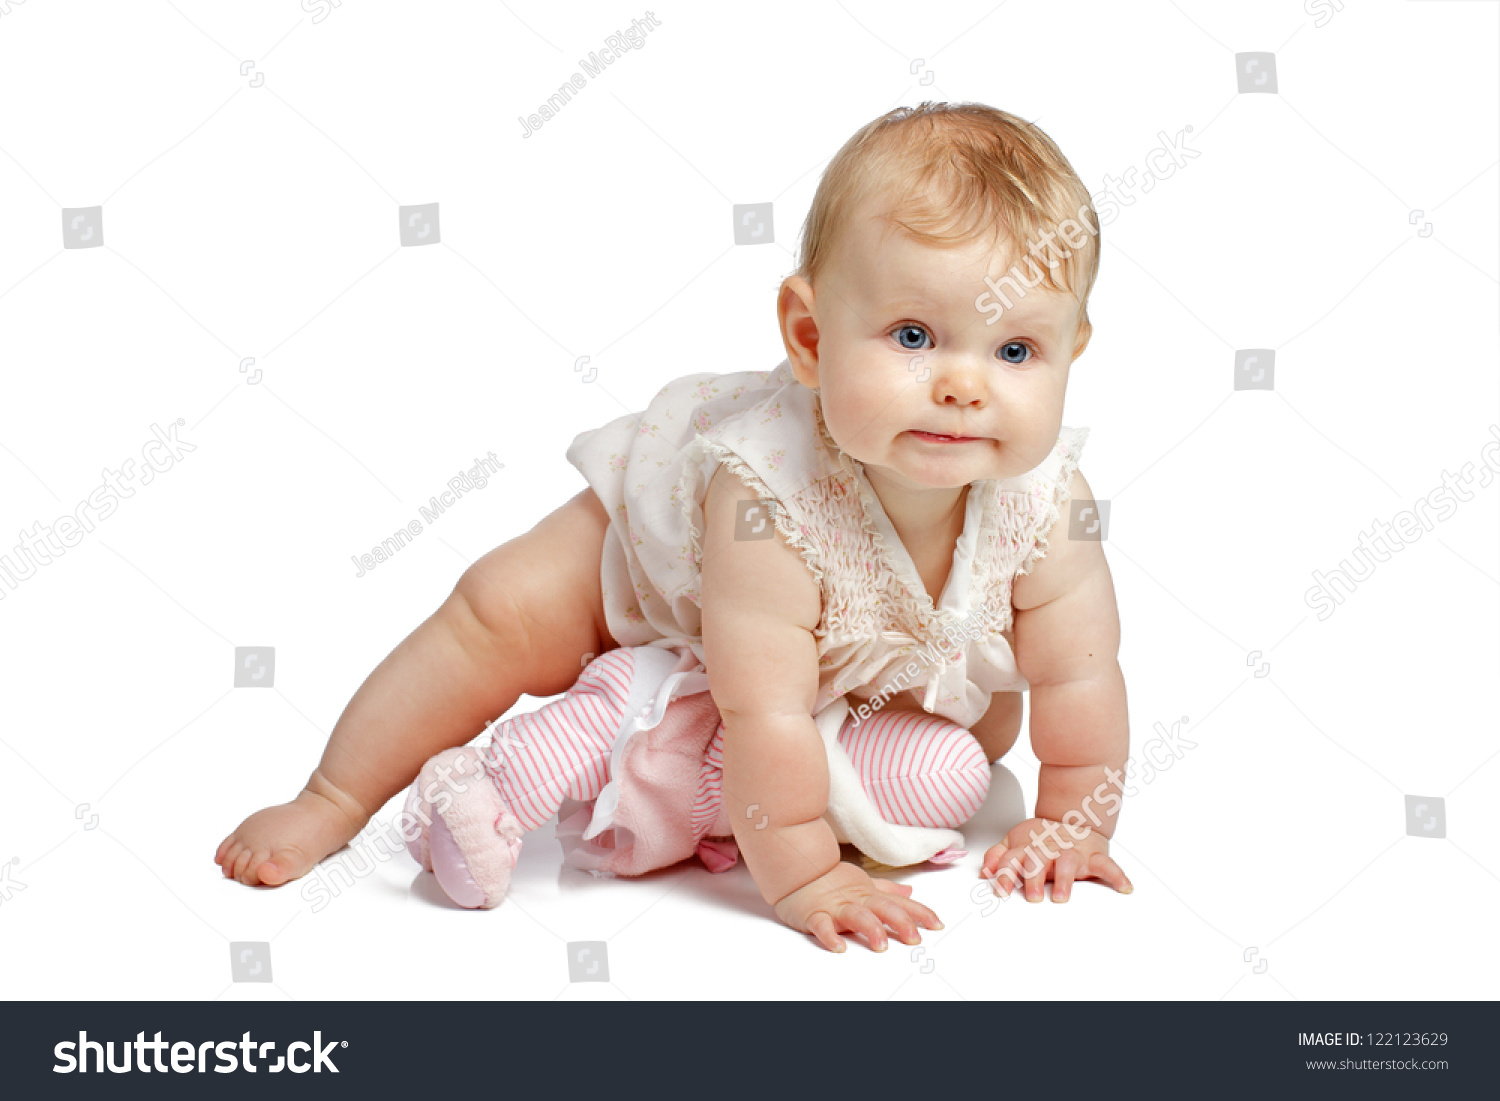 Active eight month old baby girl crawls with determined expression she wears a dainty sleeveless